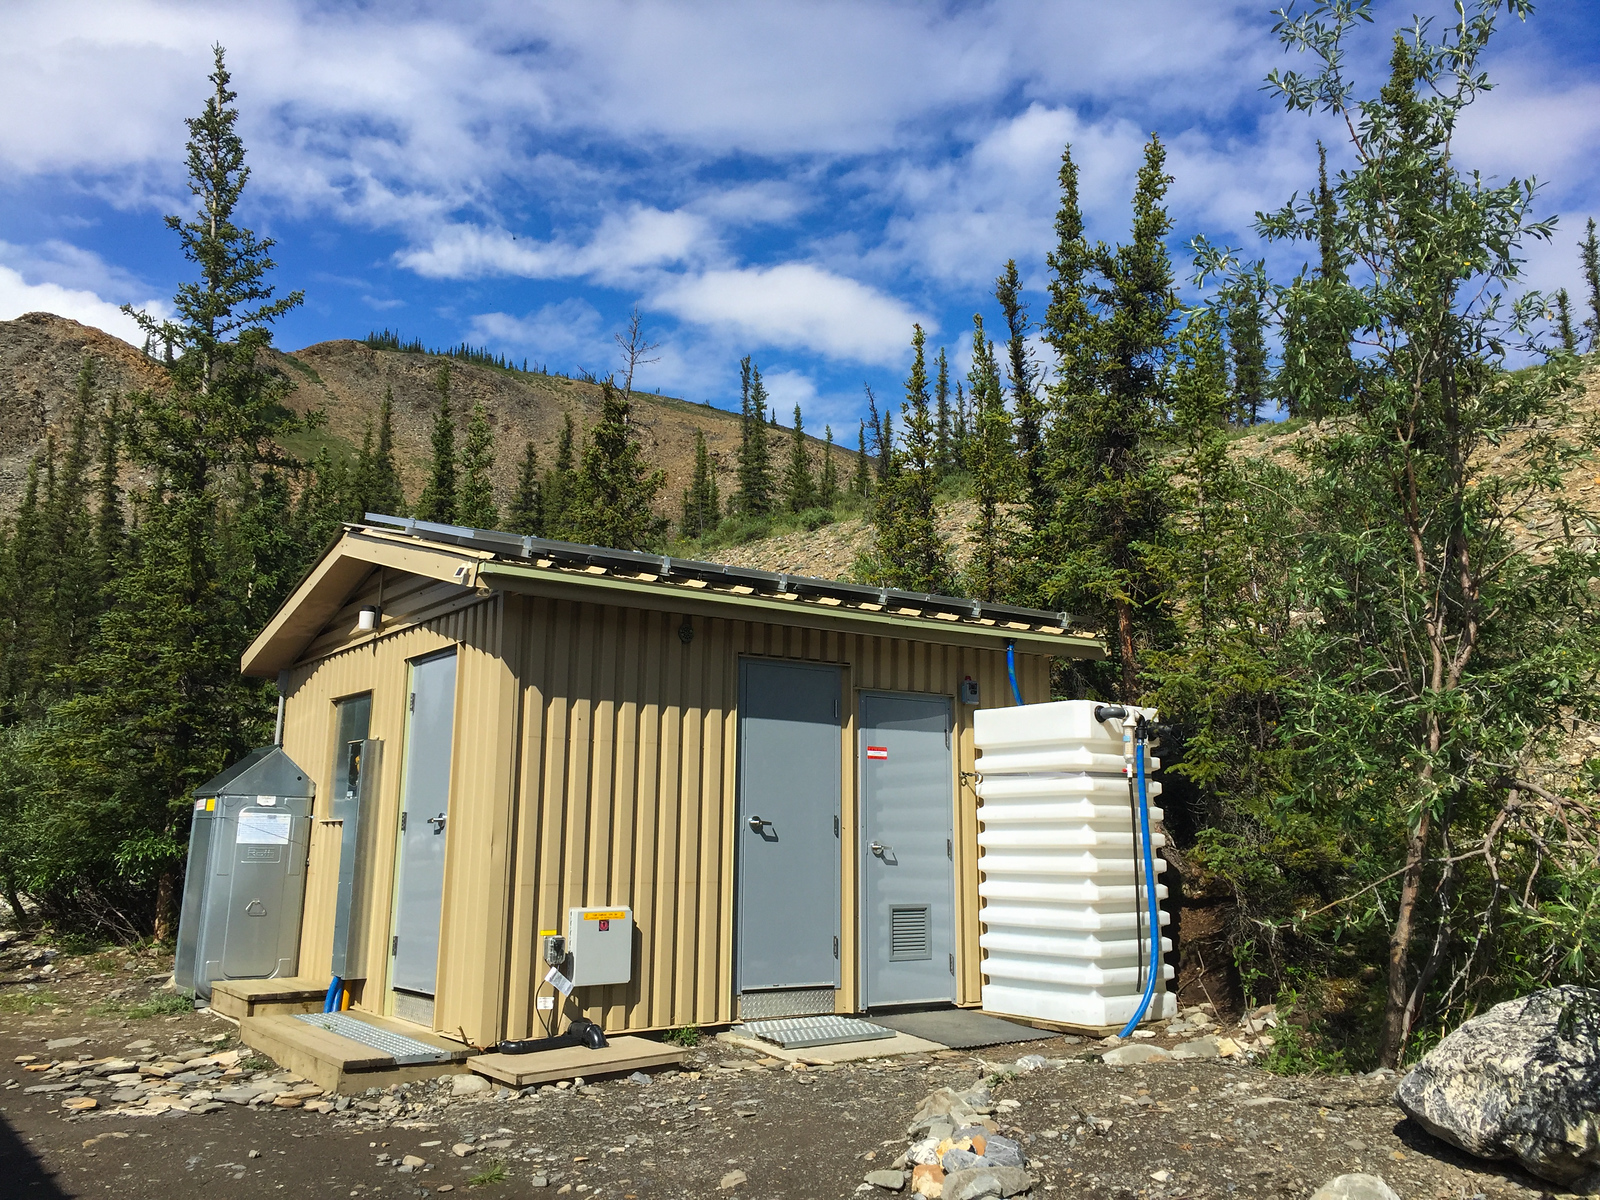 Modern day toilet luxury in Sheep Creek Basecamp.